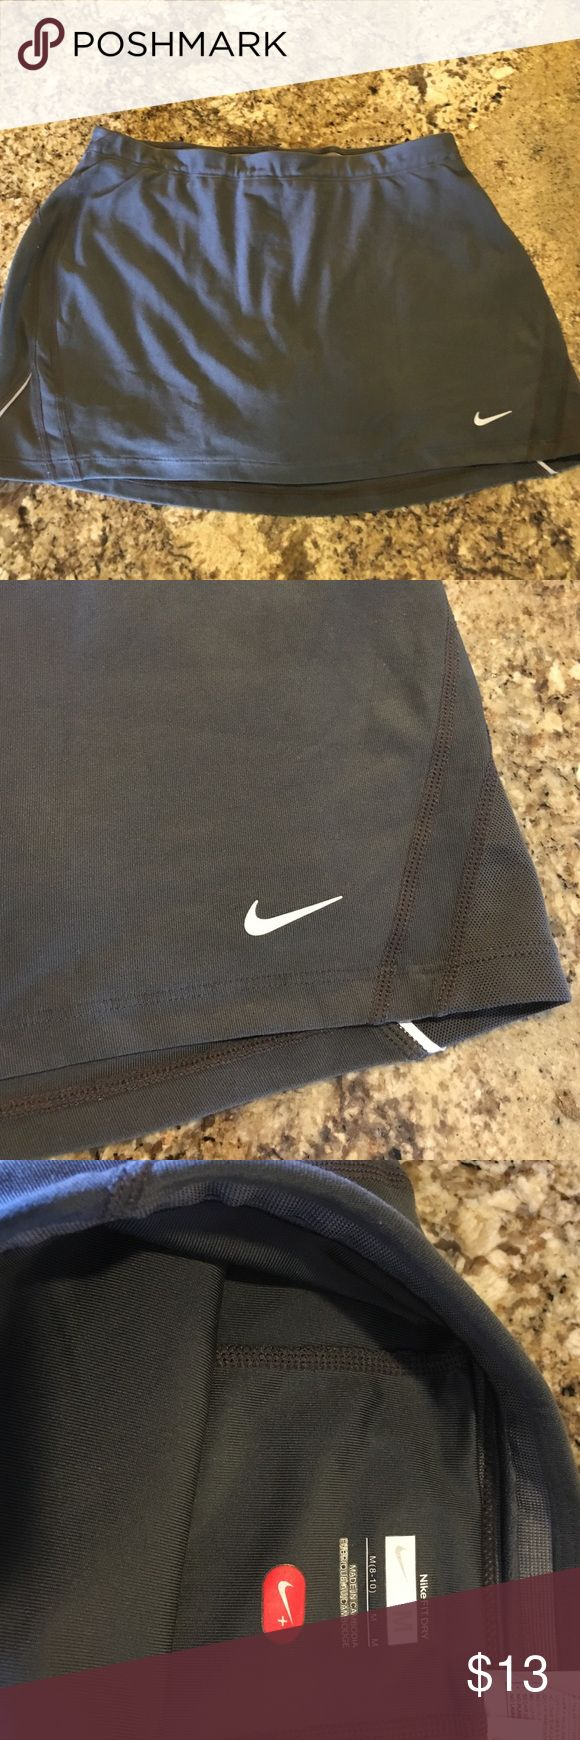 Nike Tennis Skirt with shorts Great condition and very comfortable. Great for Tennis/golf/workout Nike Skirts